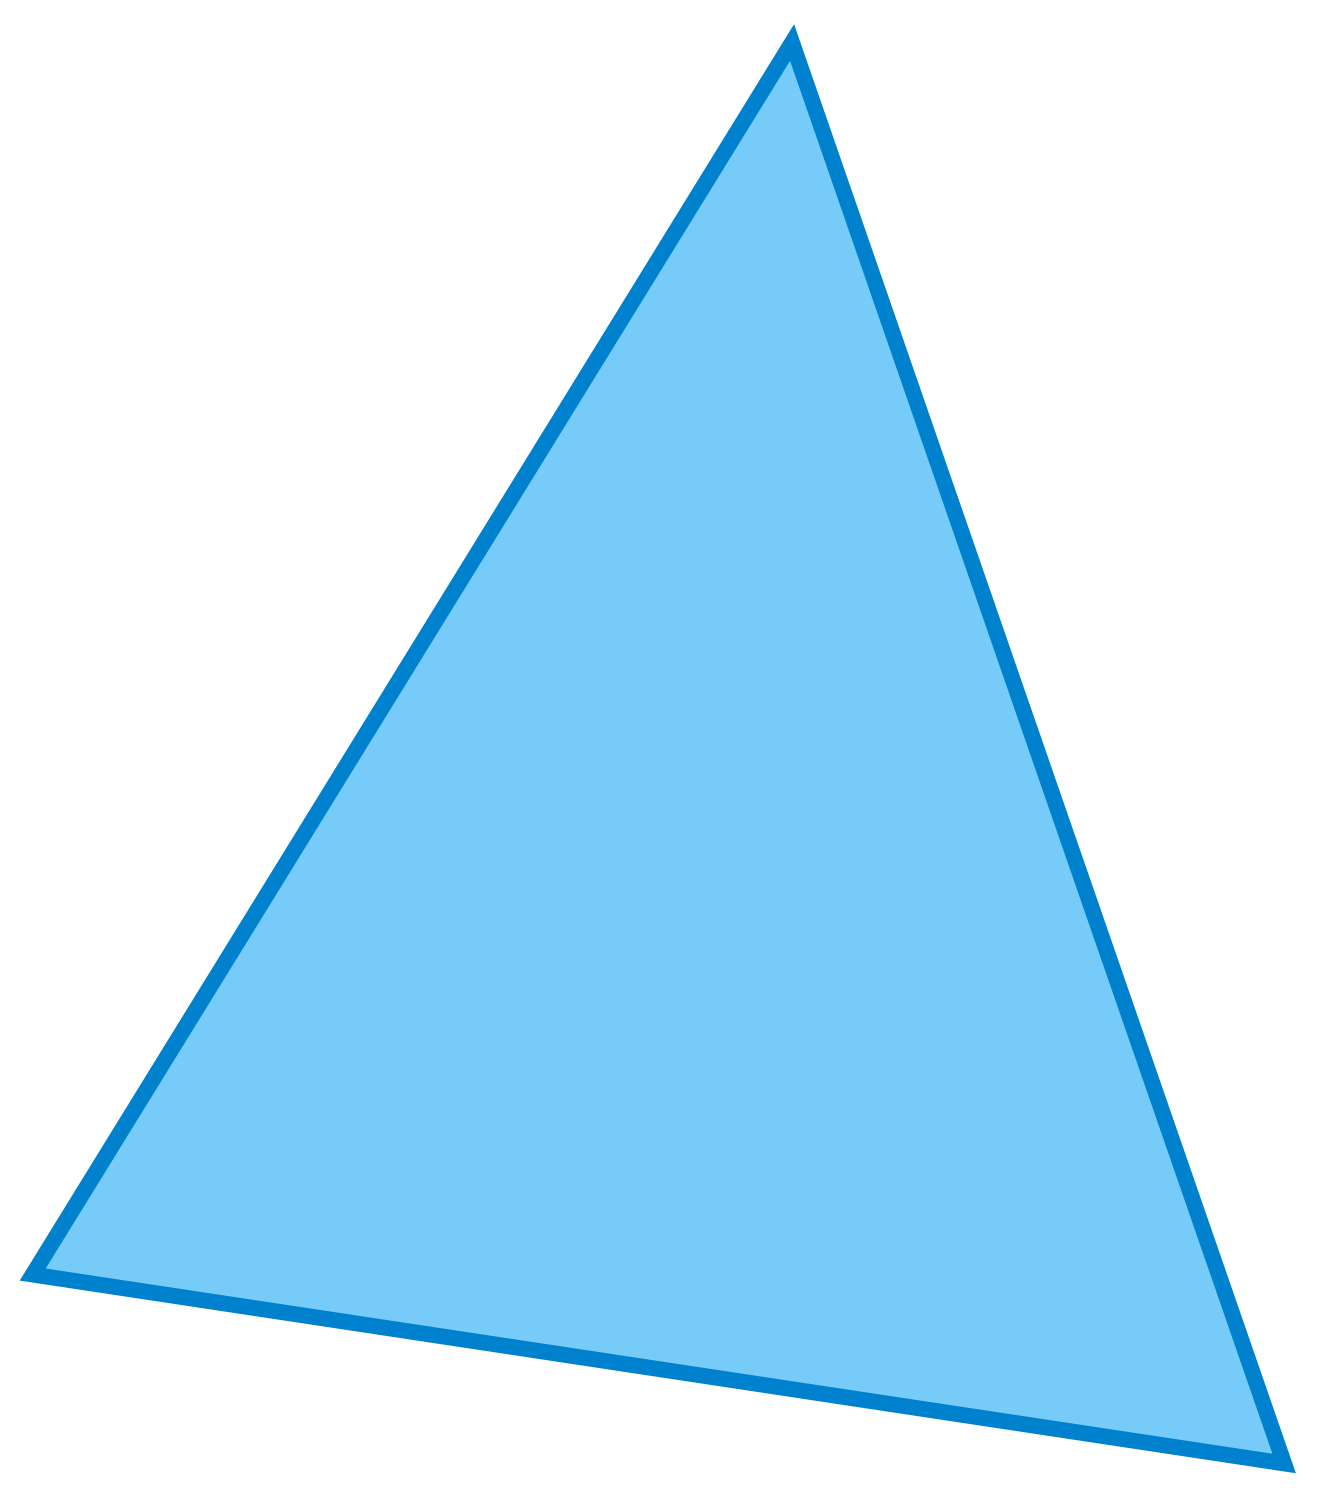 Triangle Vector 16918